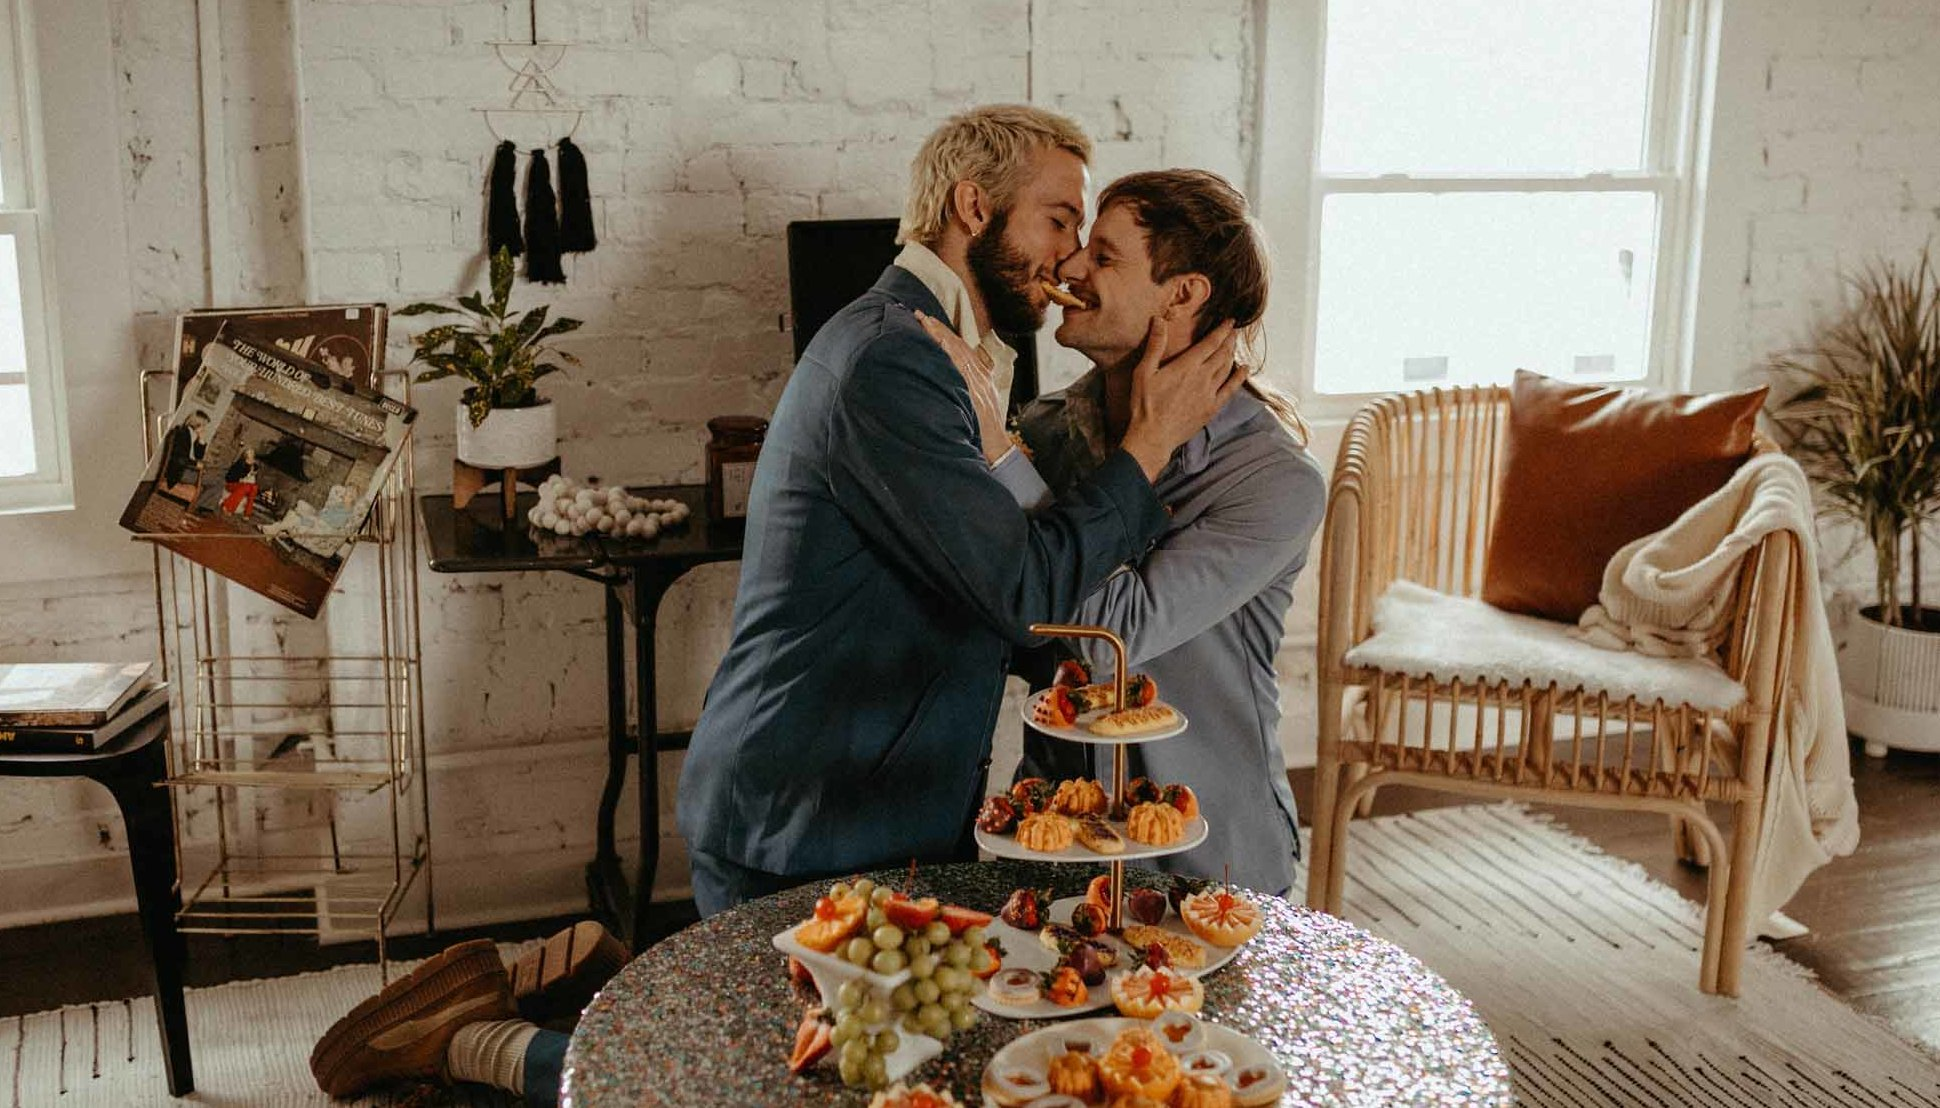 urban-loft-retro-lgbtq-elopement Savannah Williams photography gay two grooms queer mr & mr wedding Dancing With Them magazine